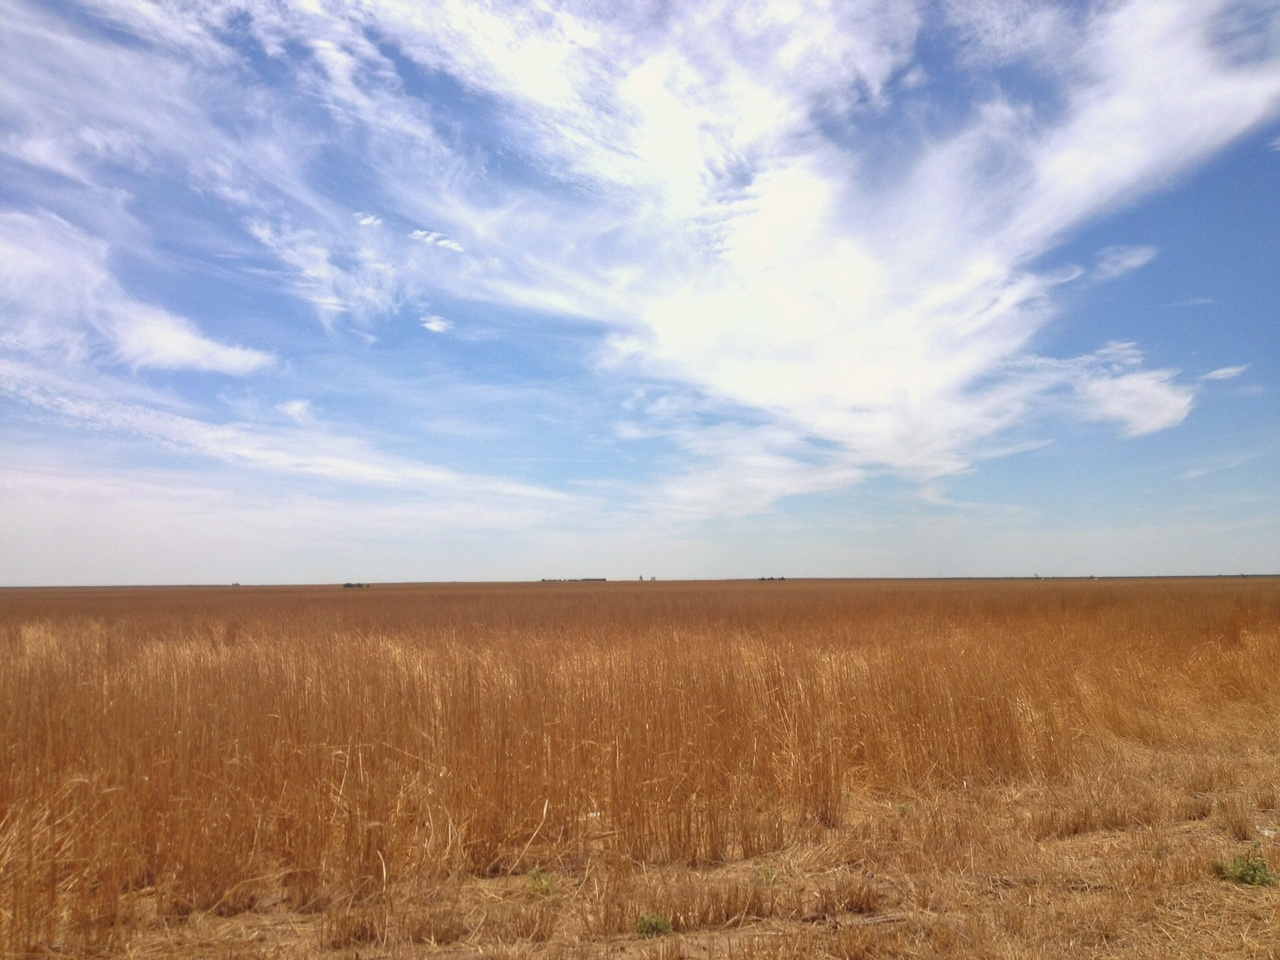 A wheat field in Logan County. (Photo by J. Schafer)